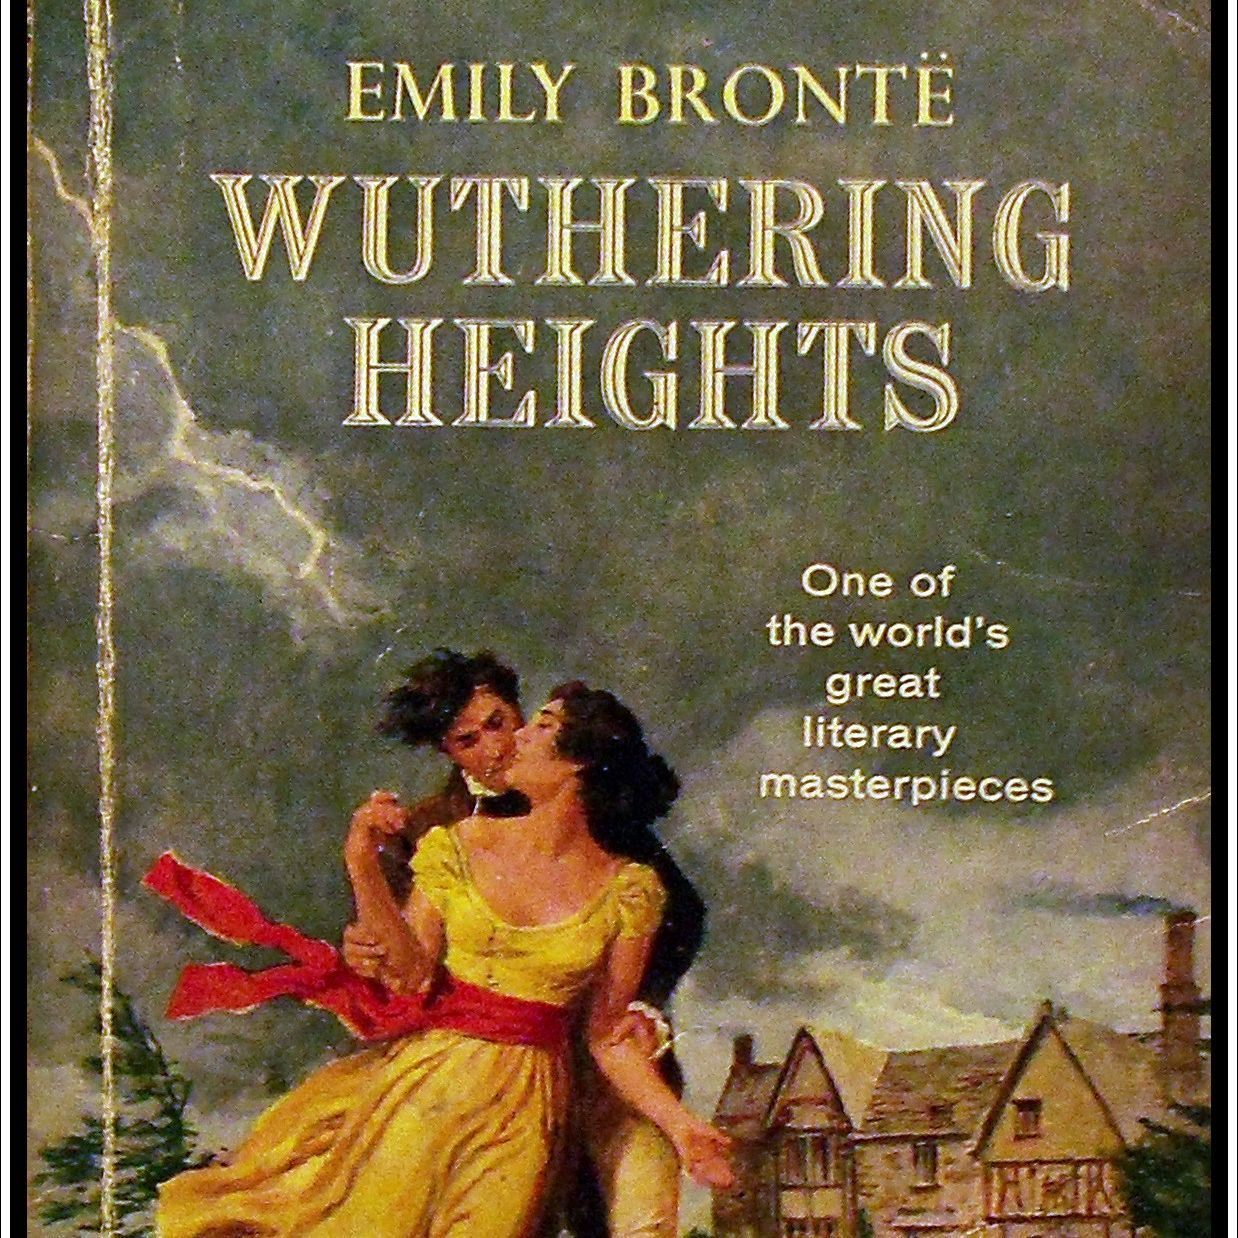 S1E2 - Wuthering Heights